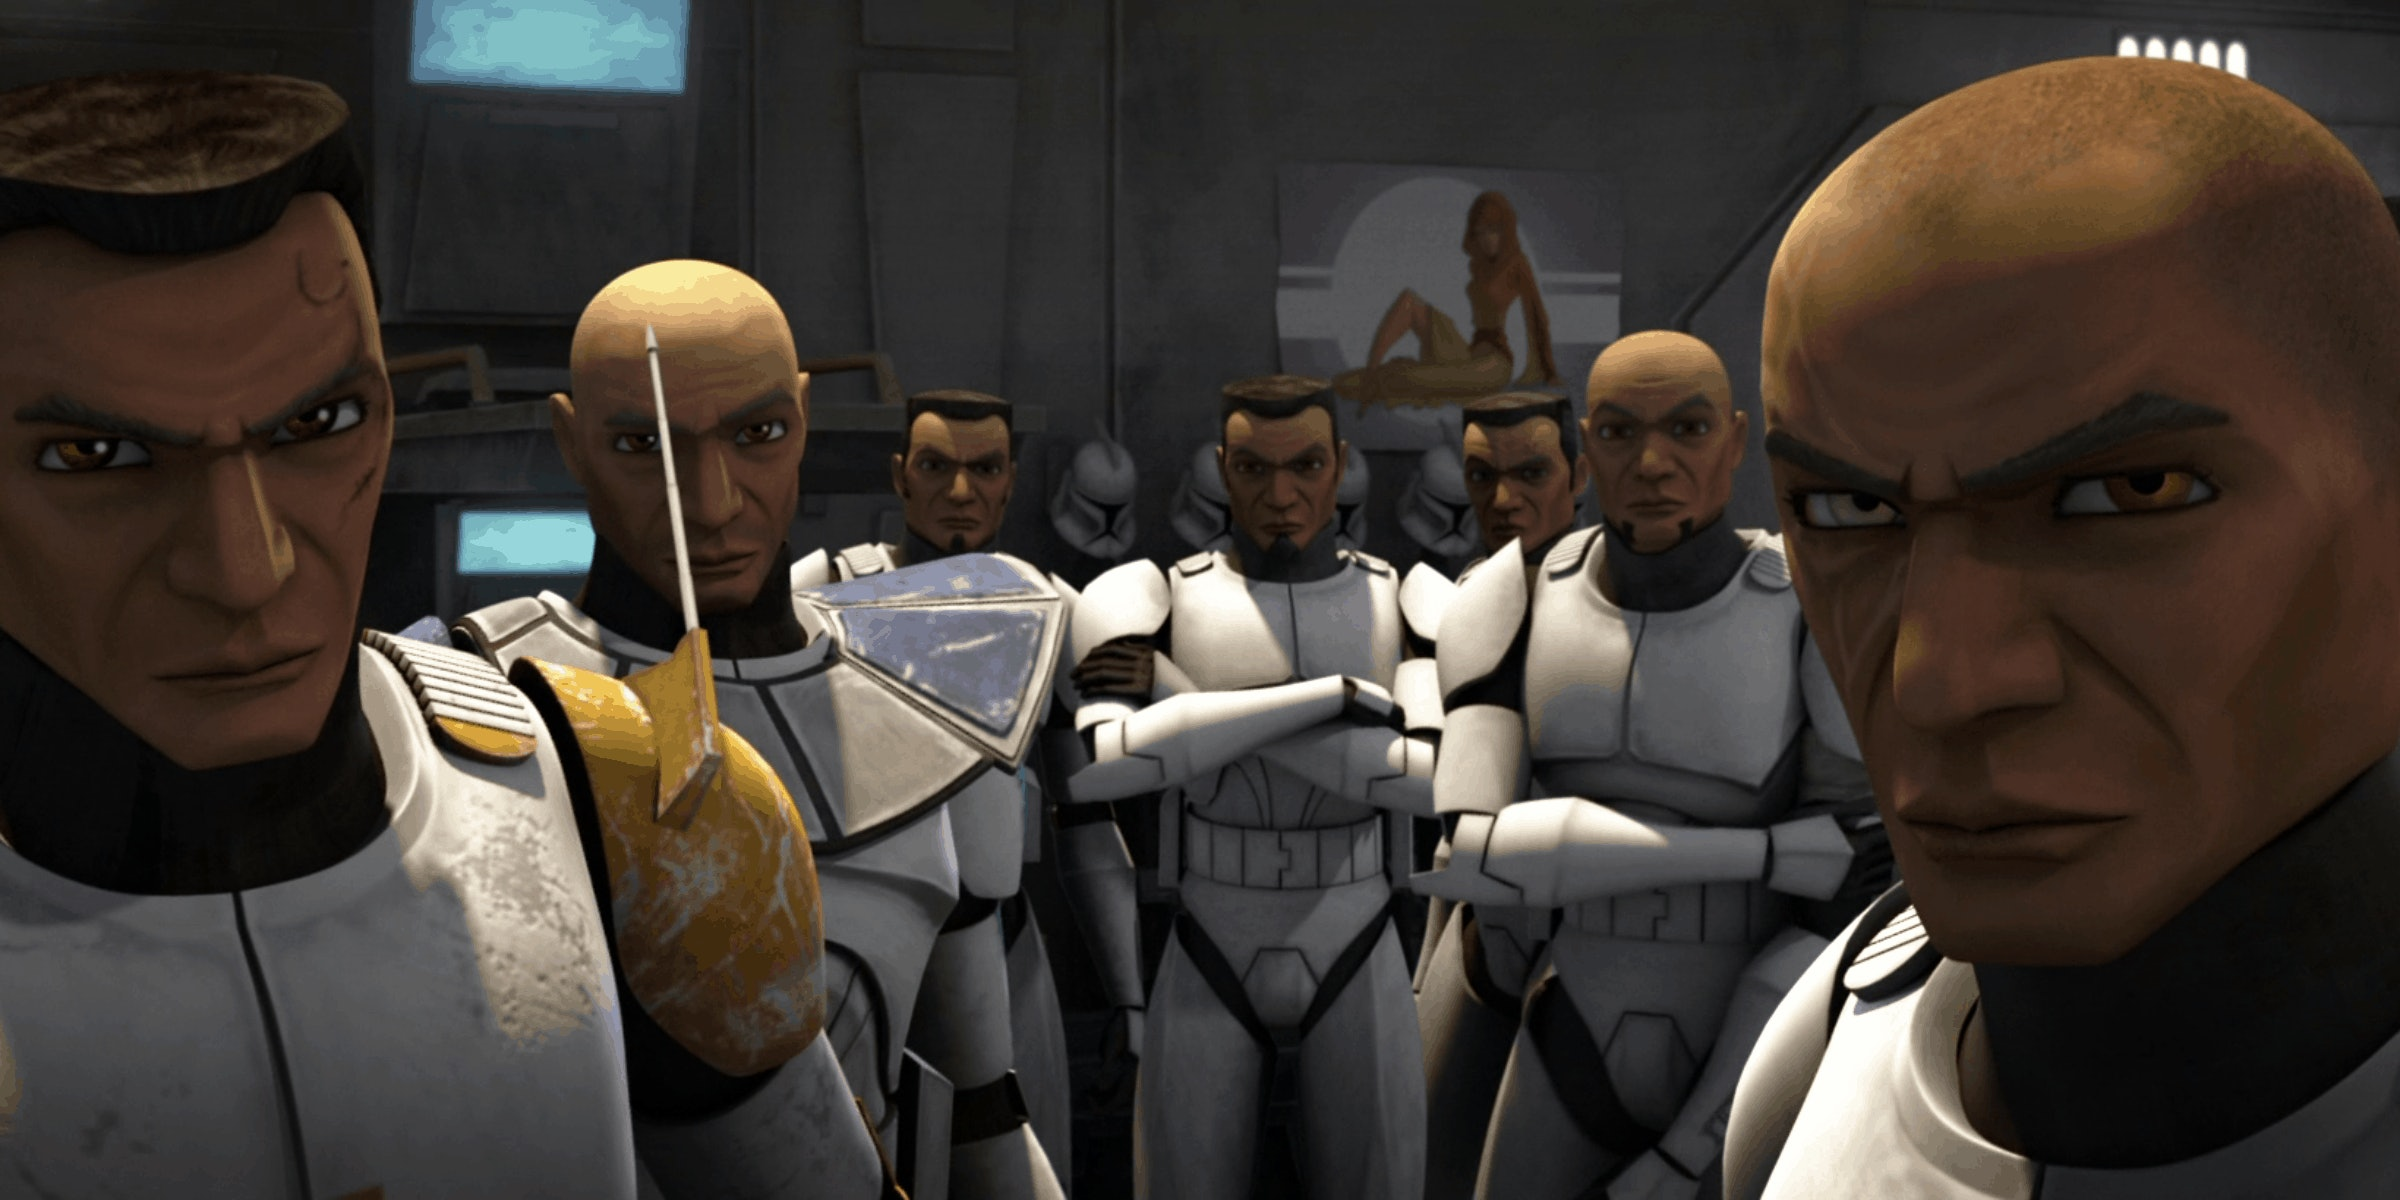 Clone Wars Season 7 Spoilers The One Bad Batch Member Worth Caring About